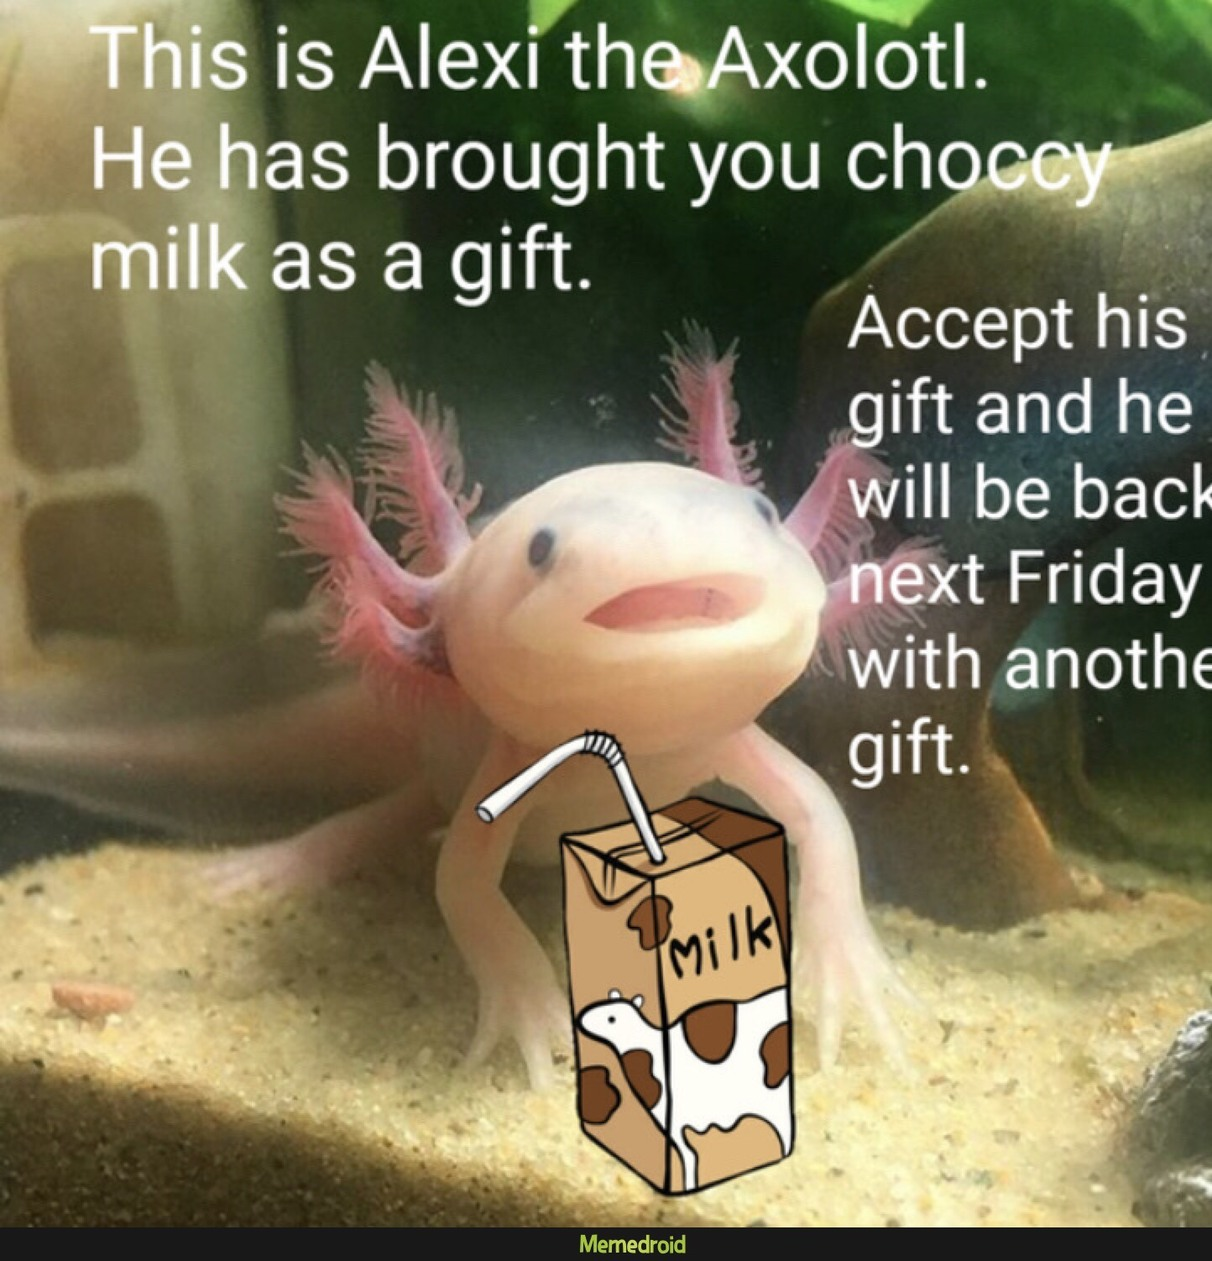 alexi is back! - meme